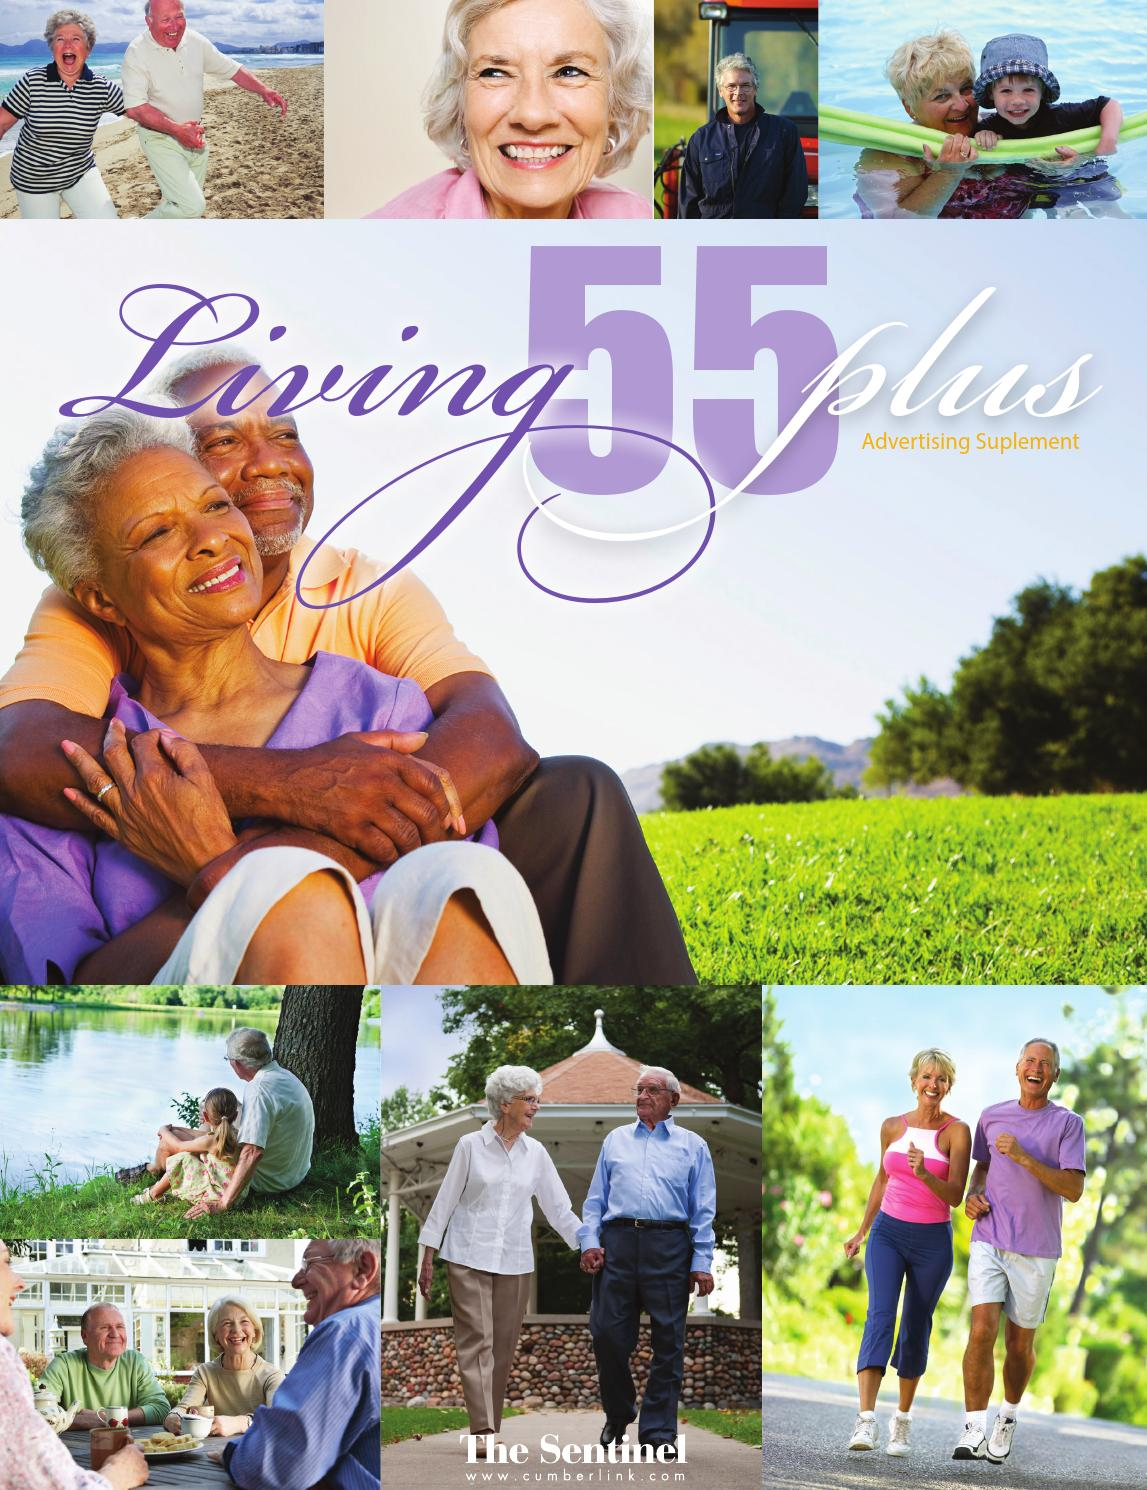 Ef572acb9a8668aadeb490b55370444f Jpg 564 851: Thesentinel Living55plus By The Sentinel